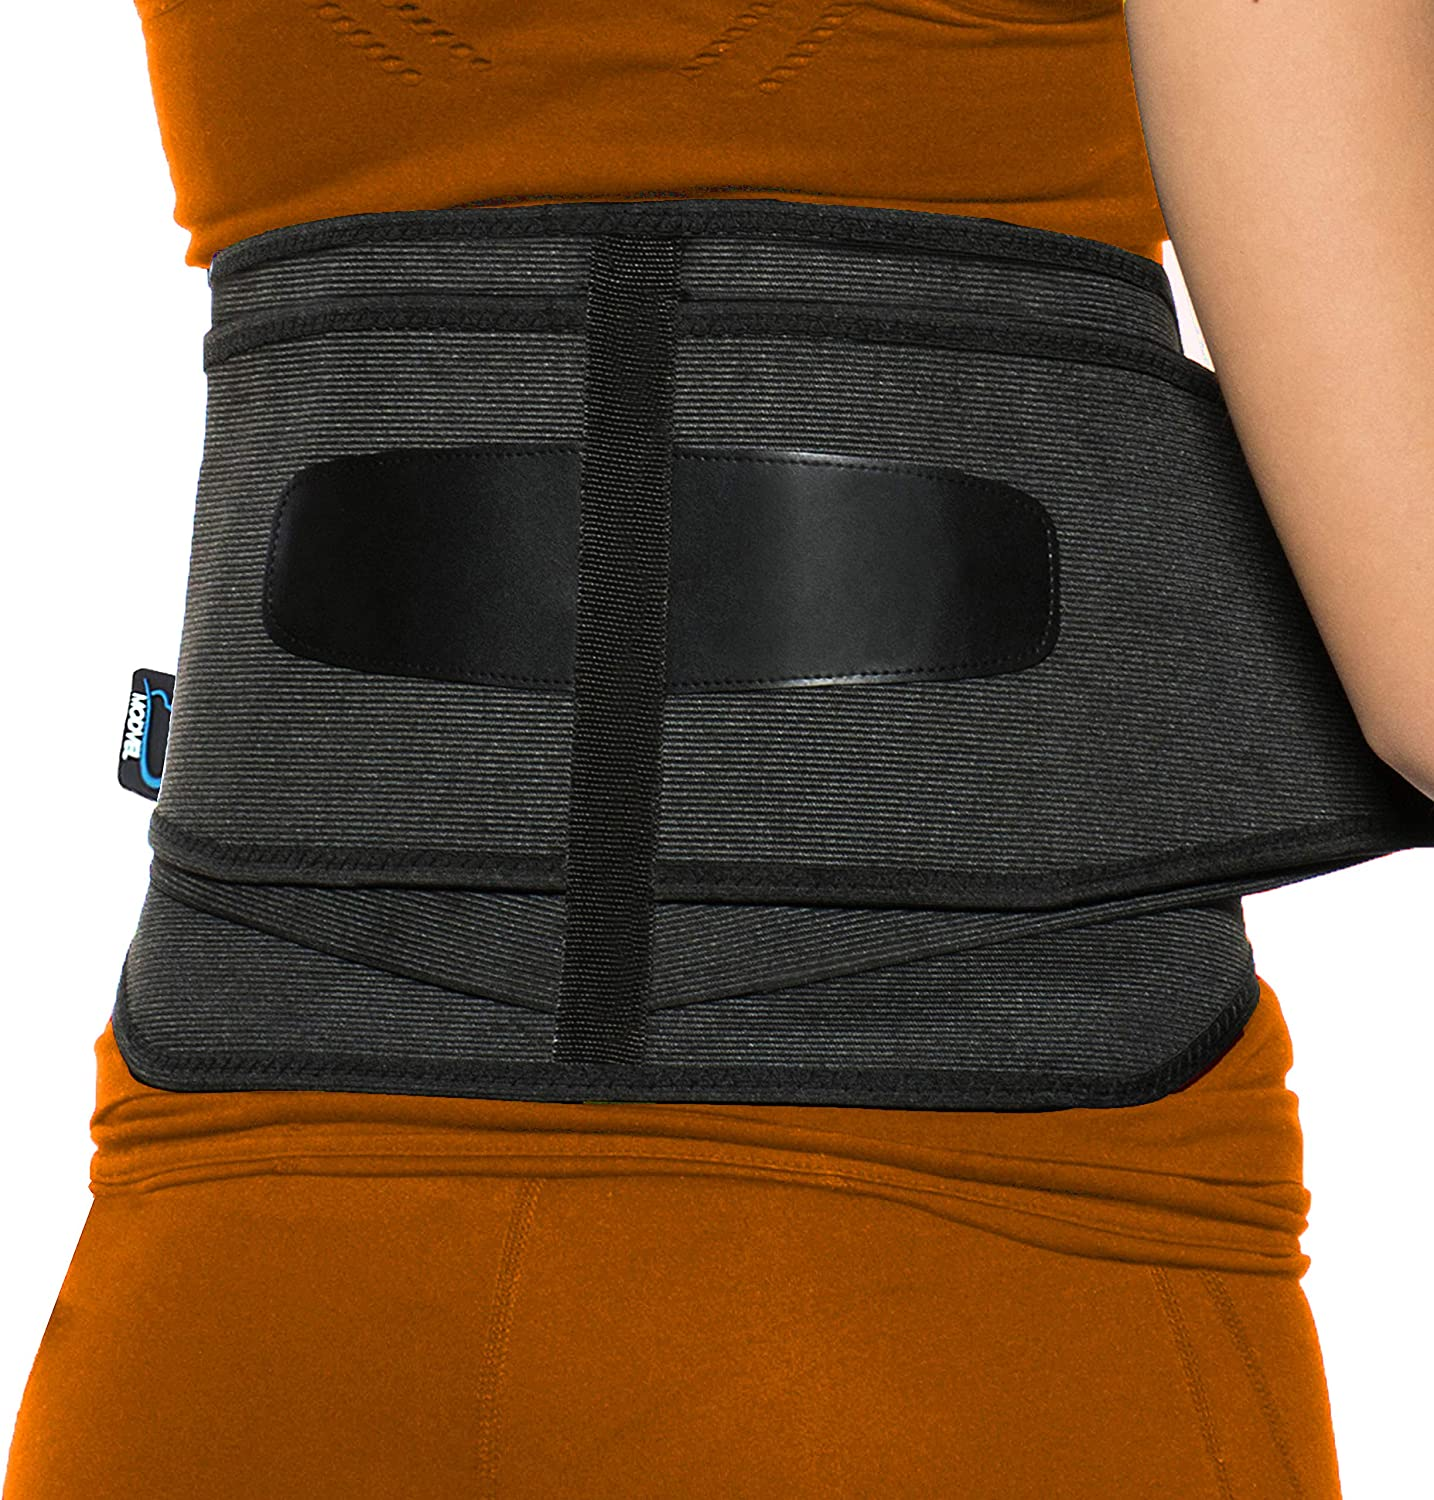 Modvel Lower Back Lumbar Support Brace for Men & Women | FDA Registered | Breathable Fabric with Lumbar Pad | Relieving Back Pain | Great for Employees at Work